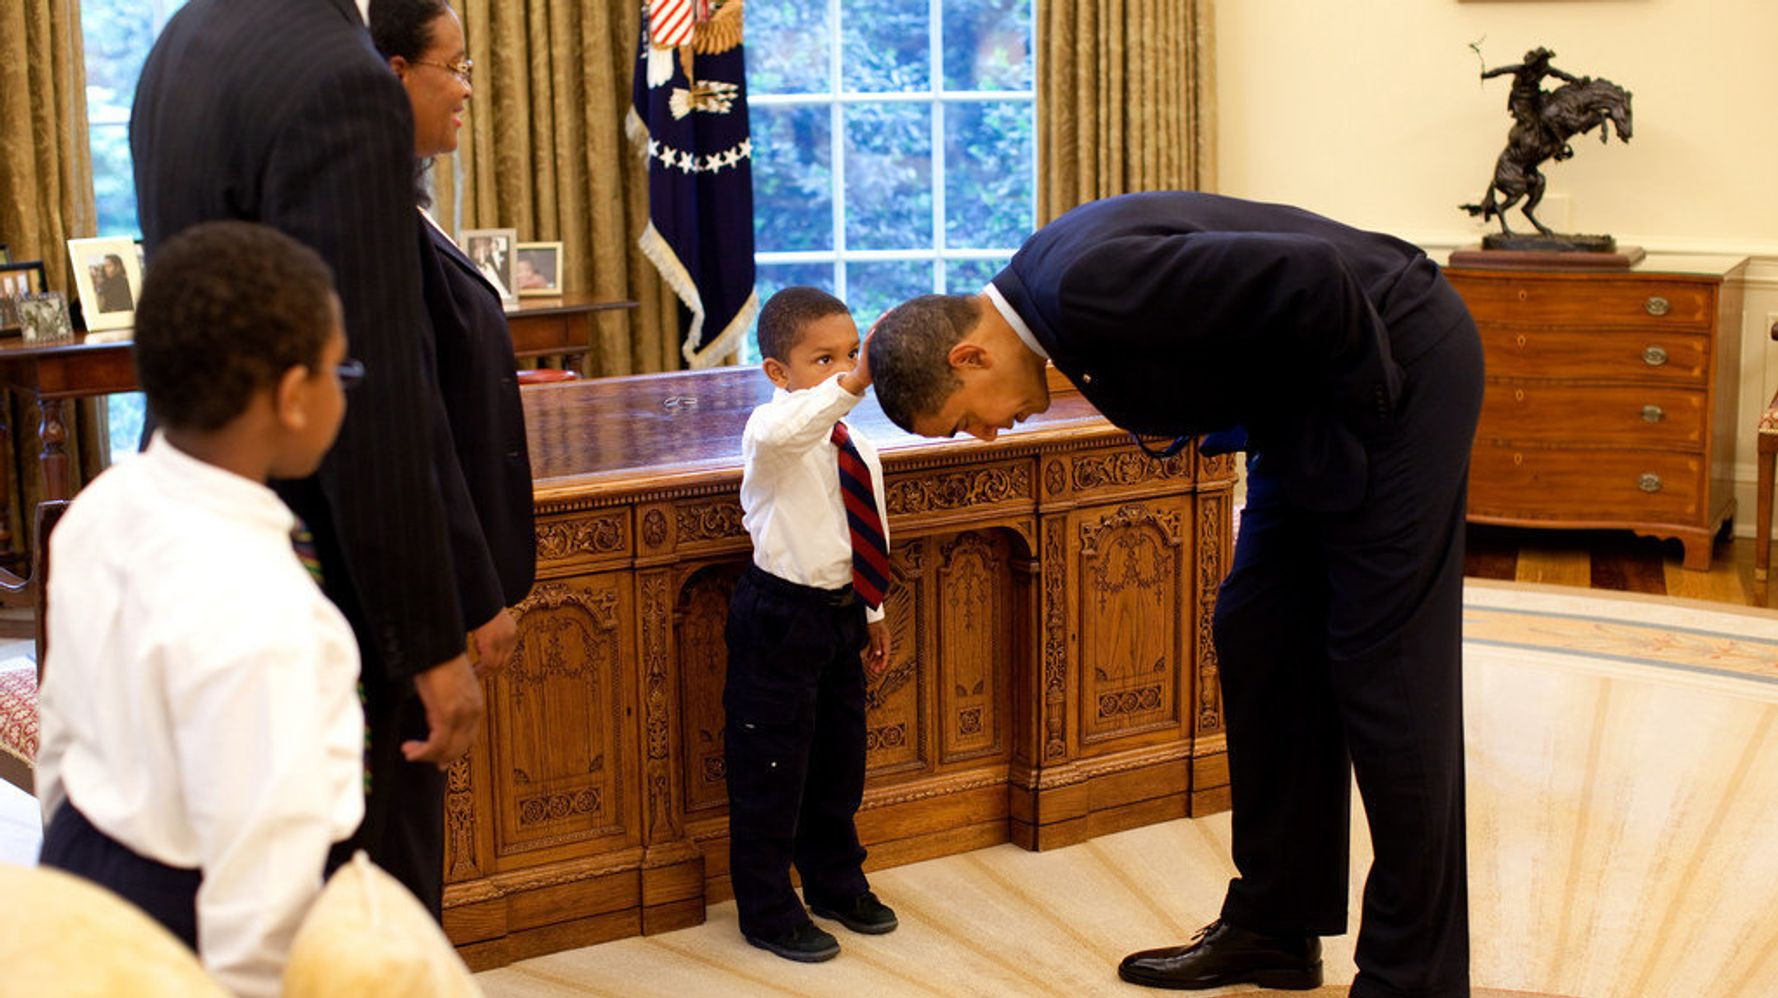 www.huffpost.com: Moments That Showed How Important Representation Is For Kids